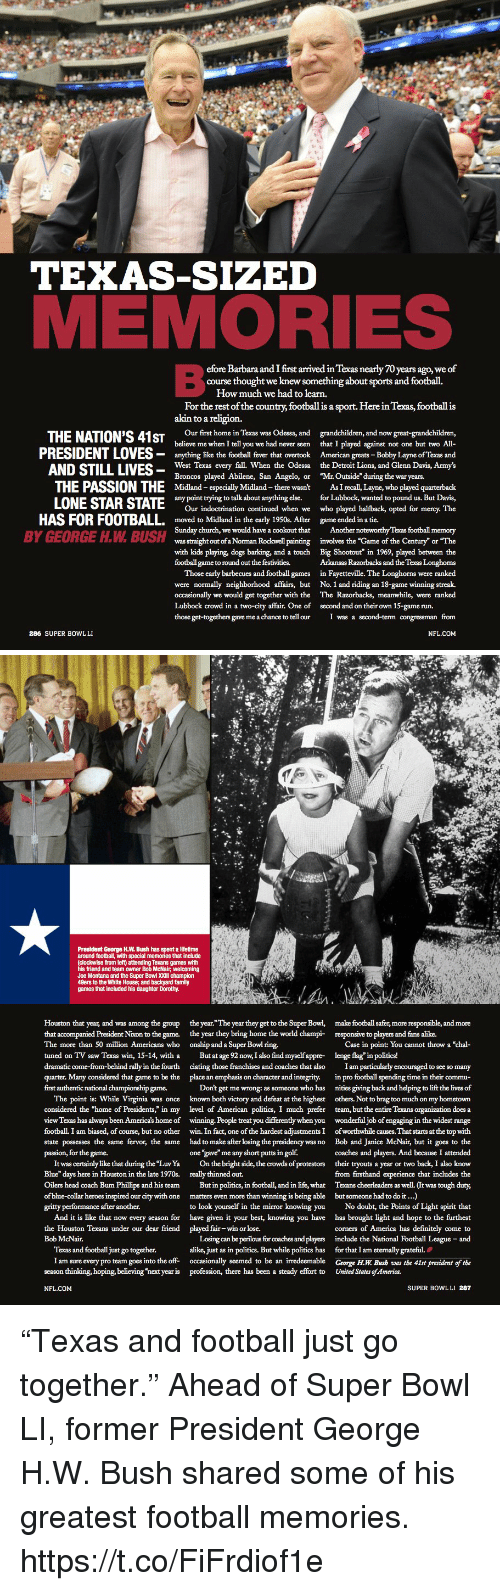 """Joe Montana: TEXAS-SIZED  MEMORIES  efore Barbara and I first arrived in Texas nearly 70 years ago, we of  For the rest of the country, football is a sport. Here in Texas, football is  Our first home in Texas was Odessa, and grandchildren, and now great-grandchildren,  ht we knew something about sports and football.  How much we had to learn.  akin to a religion  THE NATION'S 41STos  and  believe me when I tell you we had never seen  、-West Texas every fall. When the Odessa  Midland - especially Midland -there wasn't  Our indoctrination continued when we  that I played against not one but two All-  PRESIDENT LOVES- anything ike the football fever that overtook American greats -Bobby Layne of Texas and  TI,  the Detroit Lions, and Glenn Davis, Army's  Broncos played Abilene, San Angelo, or """"Mr. Outside"""" during the war years.  THE PASSION THE  LONE STAR dis  As I recall,Layne, who played quarterback  any point trying to talk about anything else.  for Lubbock, wanted to pound us. But Davis,  who played halfback, opted for mercy. The  HAS FOR FOOTBALL. moved to Midland in the early 1950. After  game ended in a tie.  Sunday church, we would have a cookout that Another noteworthy Texas footbal memory  was straight out of a Norman Rockwell painting involves the """"Game of the Century"""" or """"Thie  with kids playing, dogs barking, and a touch Big Shootout"""" in 1969, played between the  Arkansas Razorbacks and the Texas Longhoms  Those early barbecues and football games in Fayetteville. The Longhorns were ranked  were normally neighborhood affairs, but No. 1 and riding an 18-game winning streak.  occasionally we would get together with the The Razorbacks, meanwhile, were ranked  BY GEORGE H.W. BUSH  football game to round out the festivities.  Lubbock crowd in a two-city affair. One of  those get-togethers gave me a chance to tellour  second and on their own 15-game run  I was a second-term congressman from  286 SUPER BOWLLI  NFL.COM   President George H.W. Bush has spent a lifeti"""